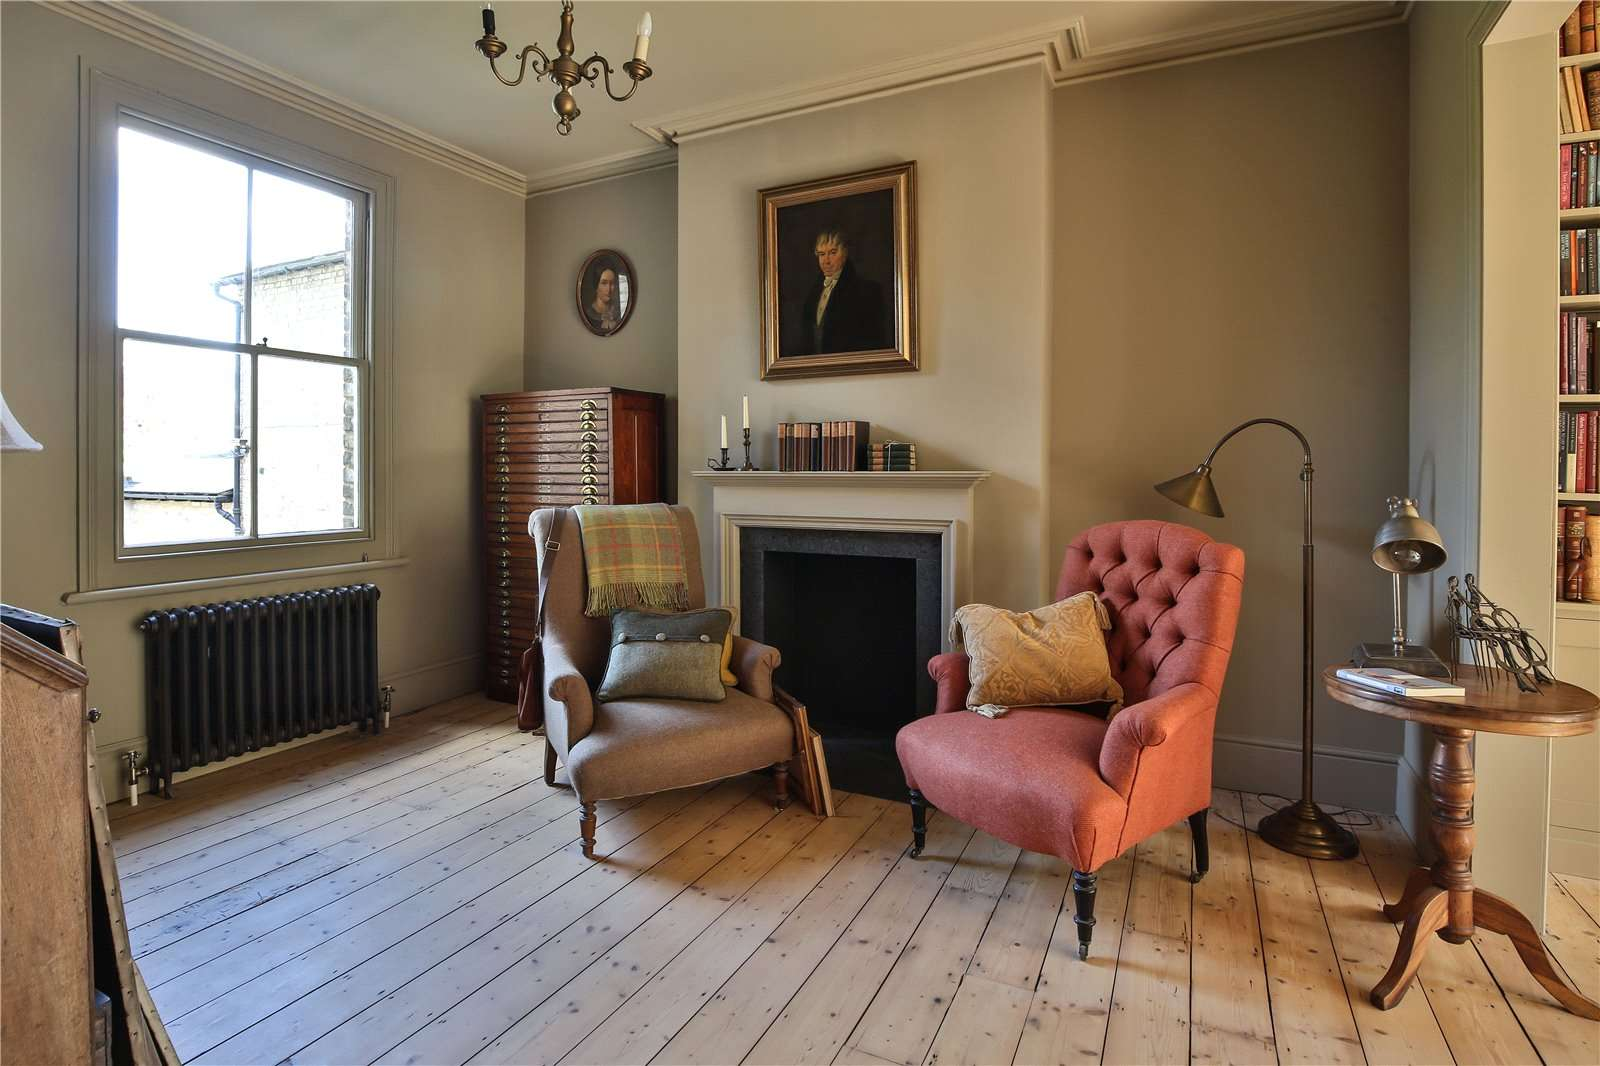 An elegantly-proportioned Victorian house on Woodstock Road in Oxford - Image Gallery 05 - Living Room